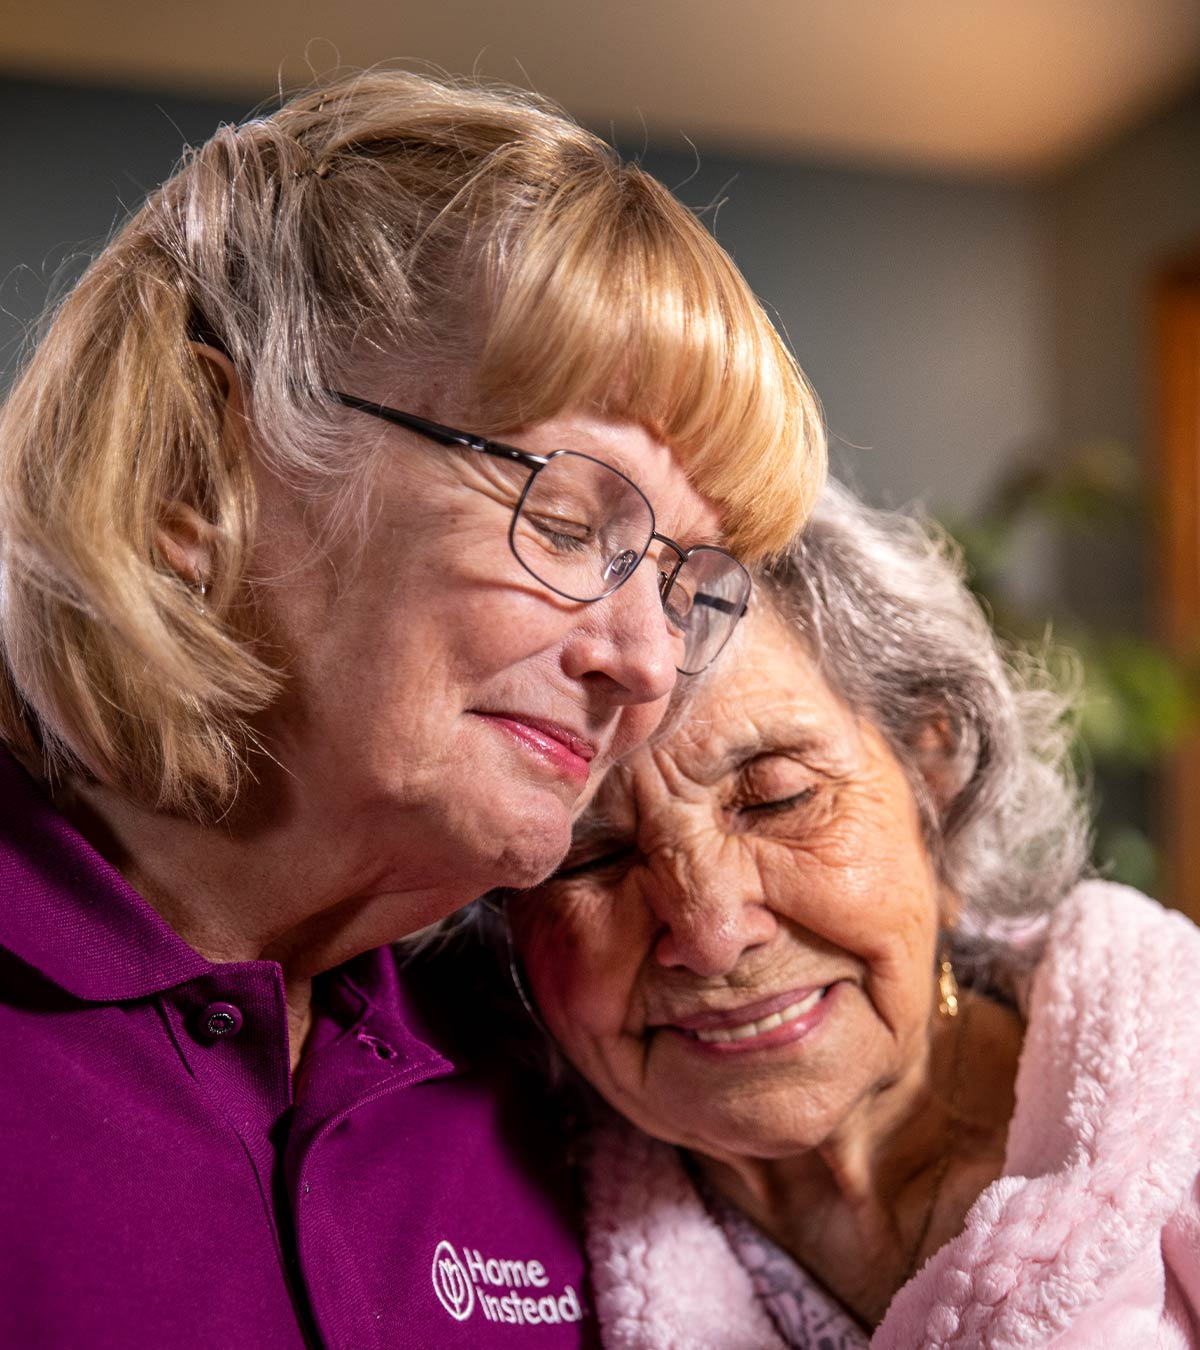 CAREGiver providing in-home senior care services. Home Instead of Hewitt, TX provides Elder Care to aging adults.